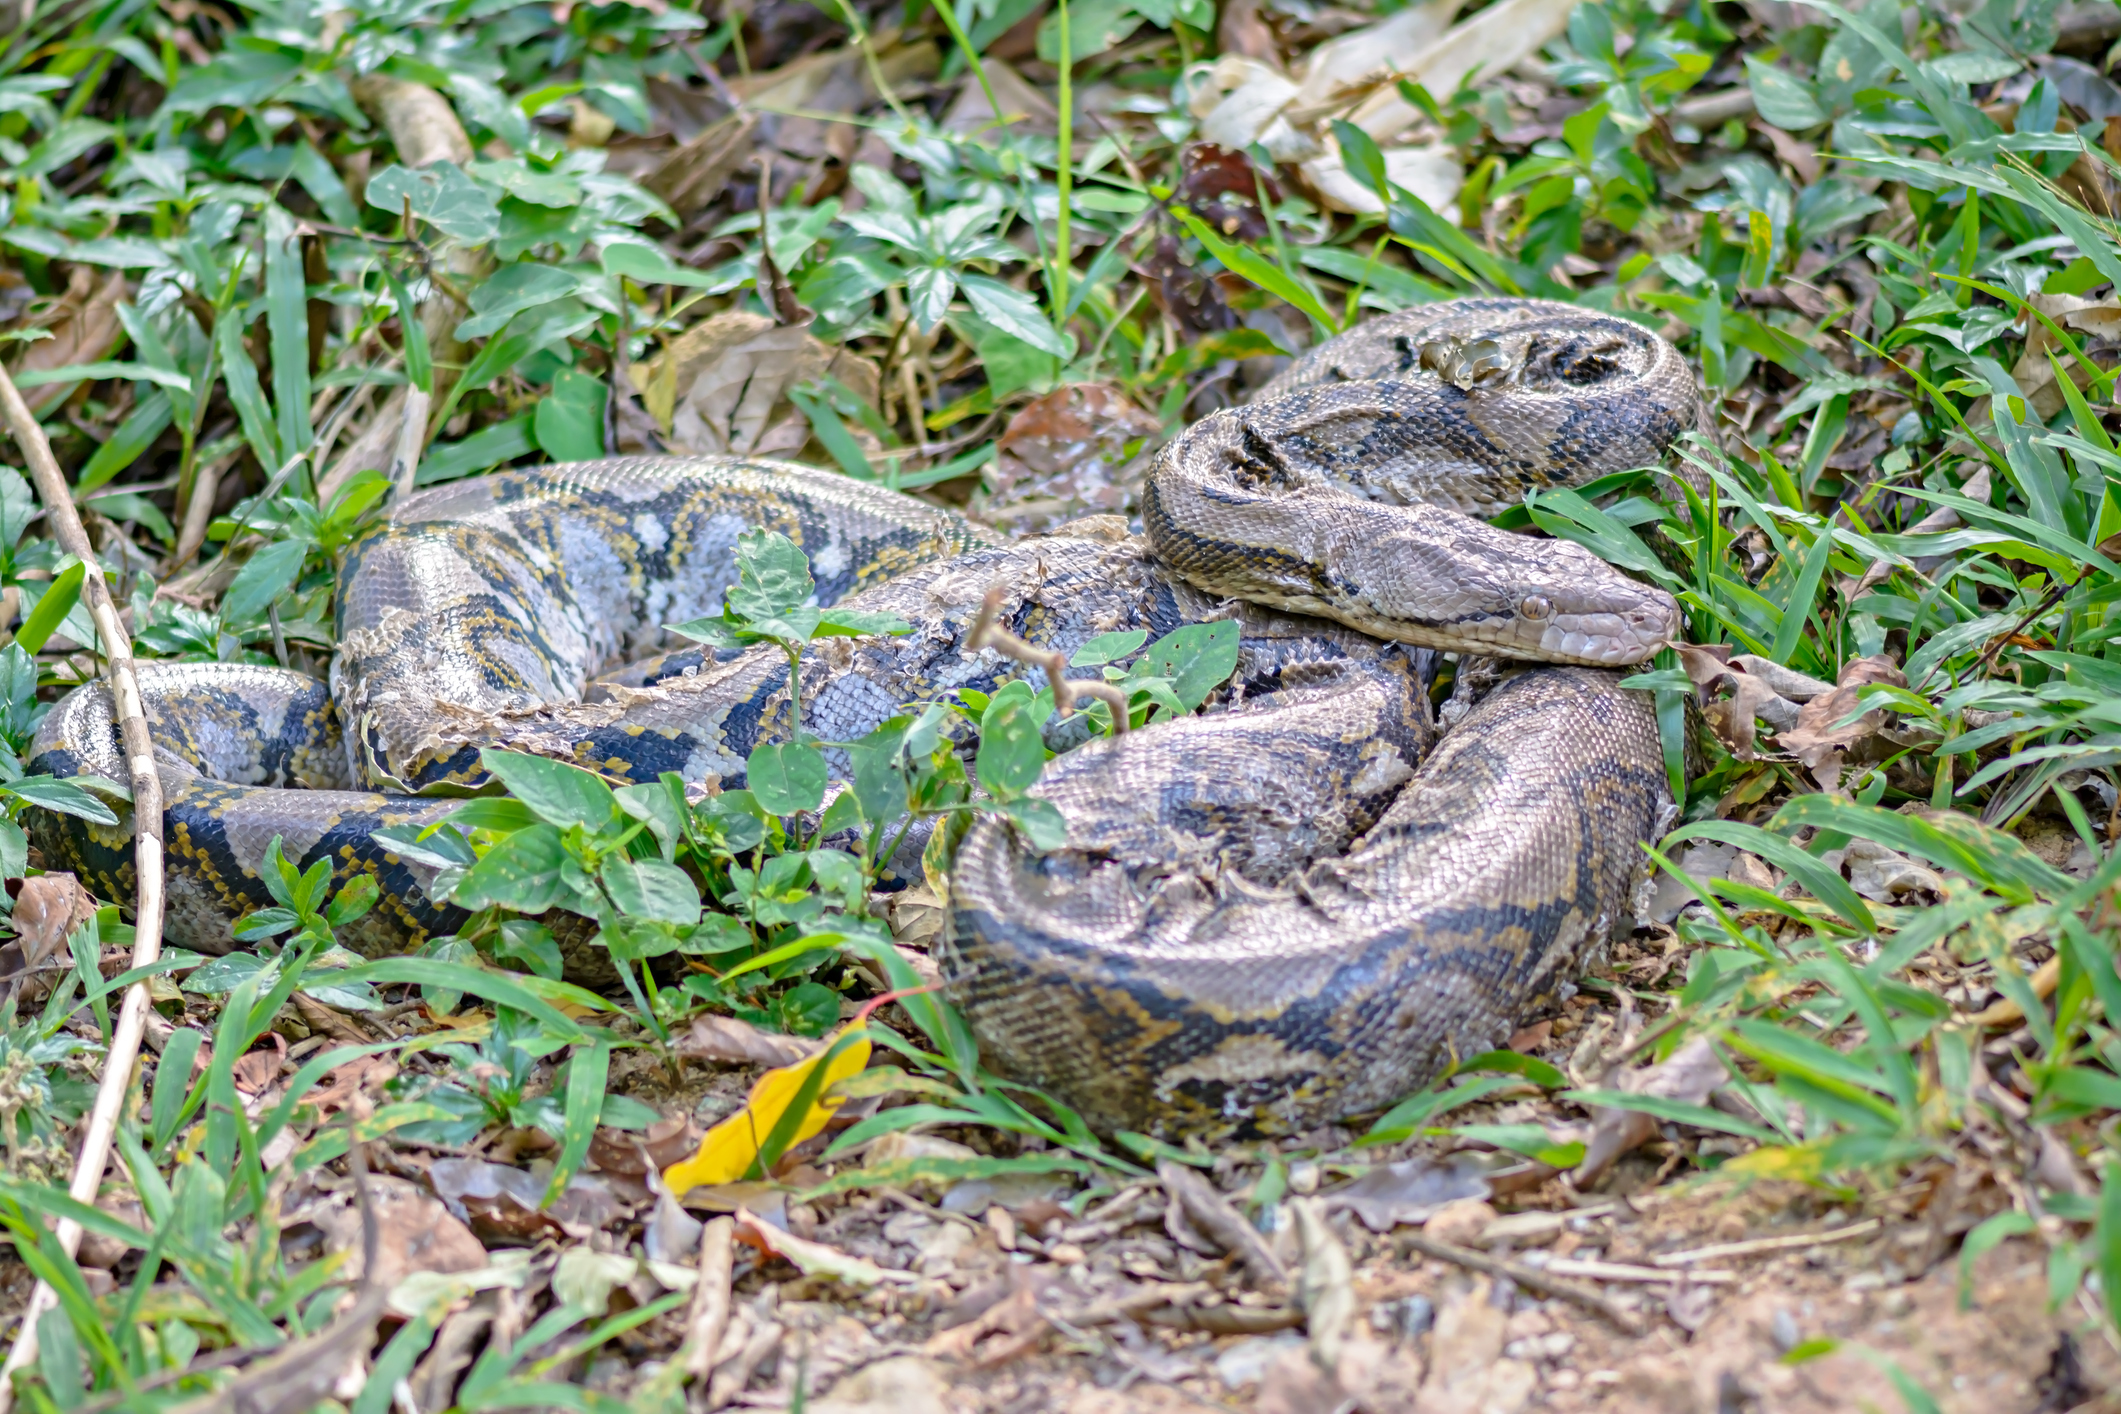 Python Attacks Puppy Until Aussie Woman Goes All 'Oh Hell Nah' And Saves The Day